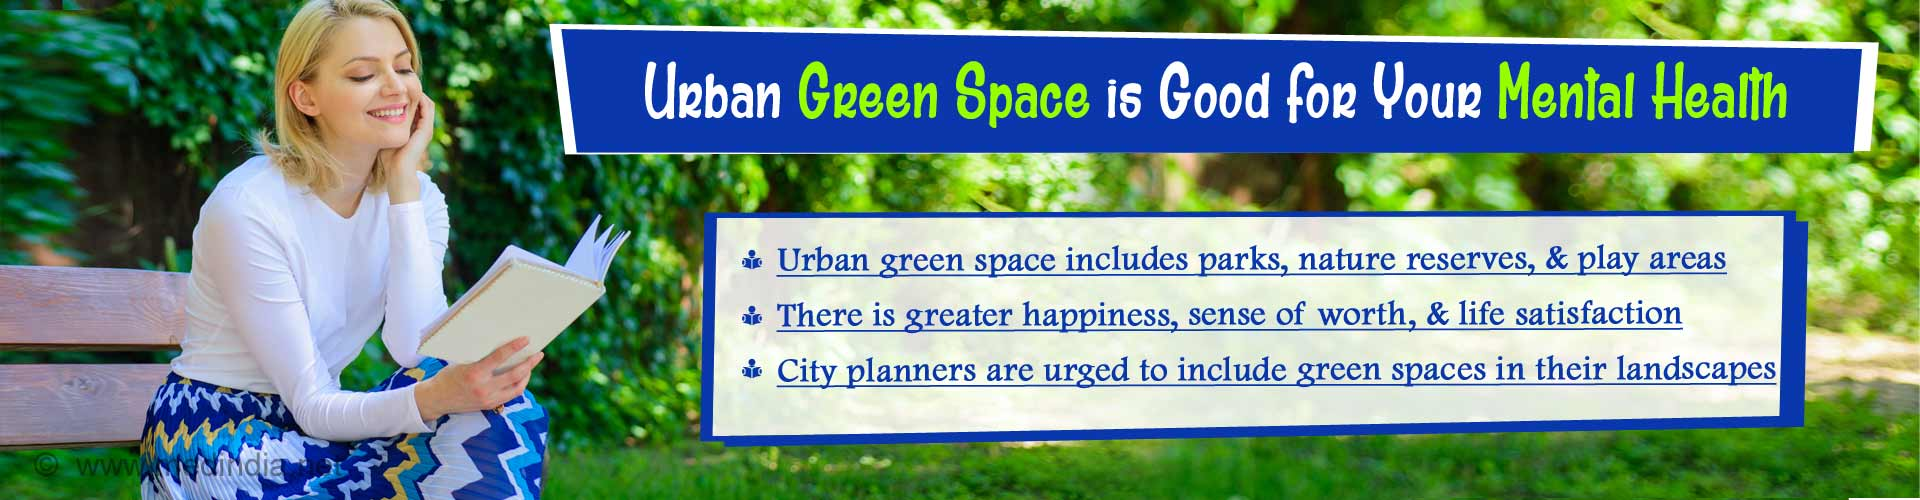 Closer You Are to Green Space, Better is Your Mental Health